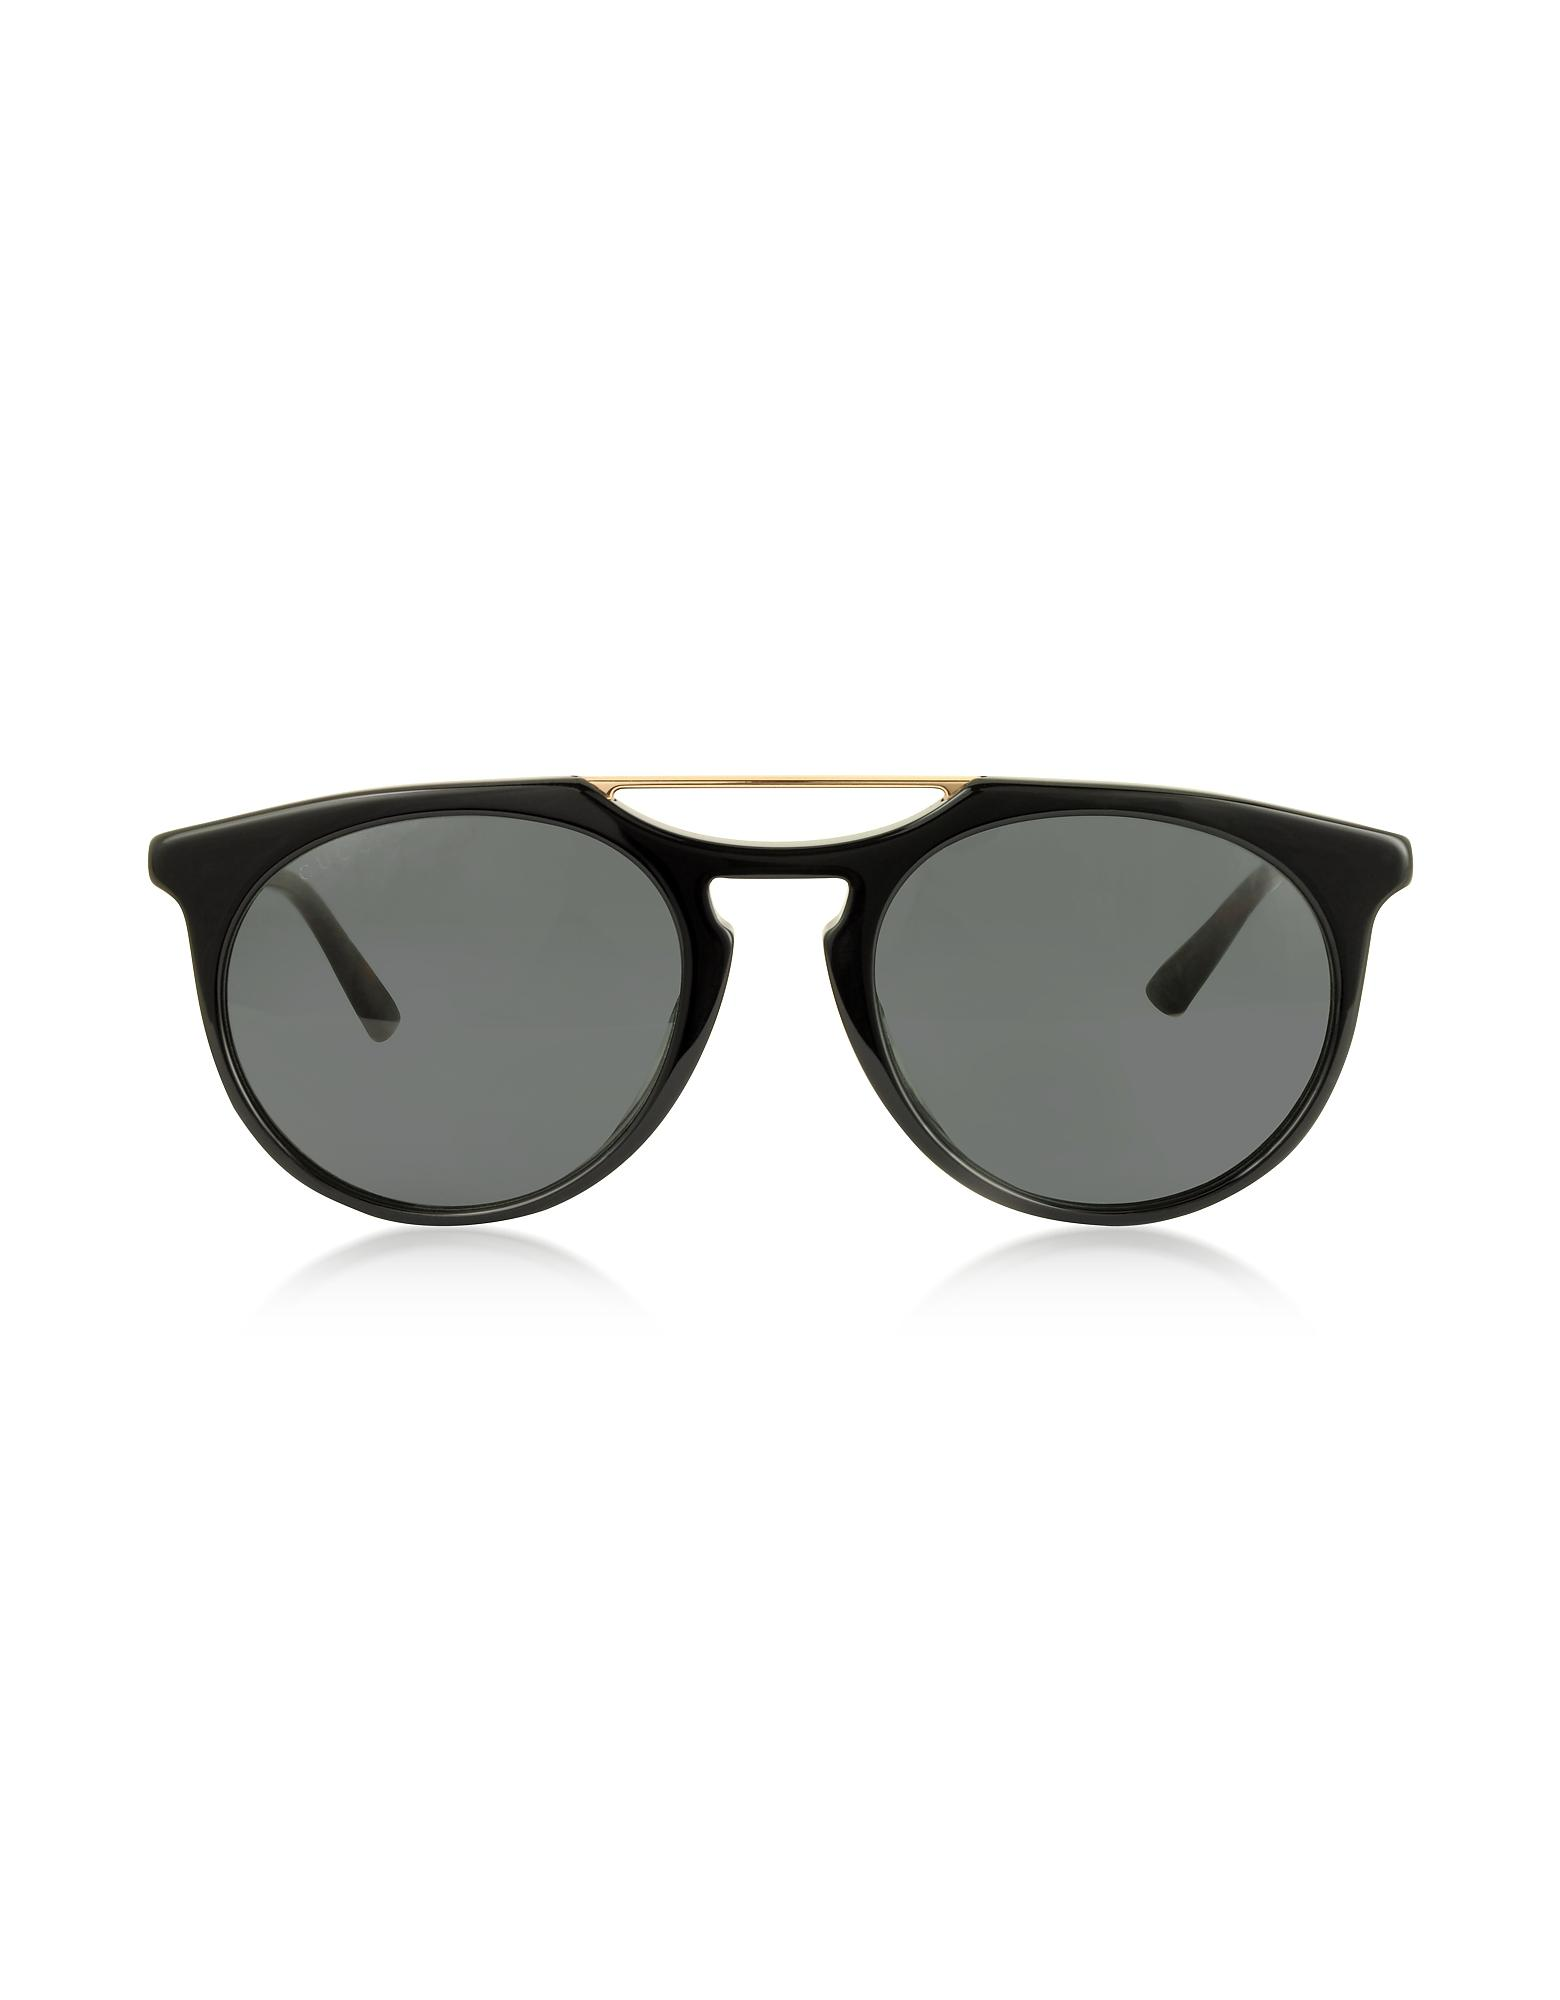 ffa836e85ca Lyst - Gucci GG0320S Round-frame Acetate Sunglasses in Black for Men